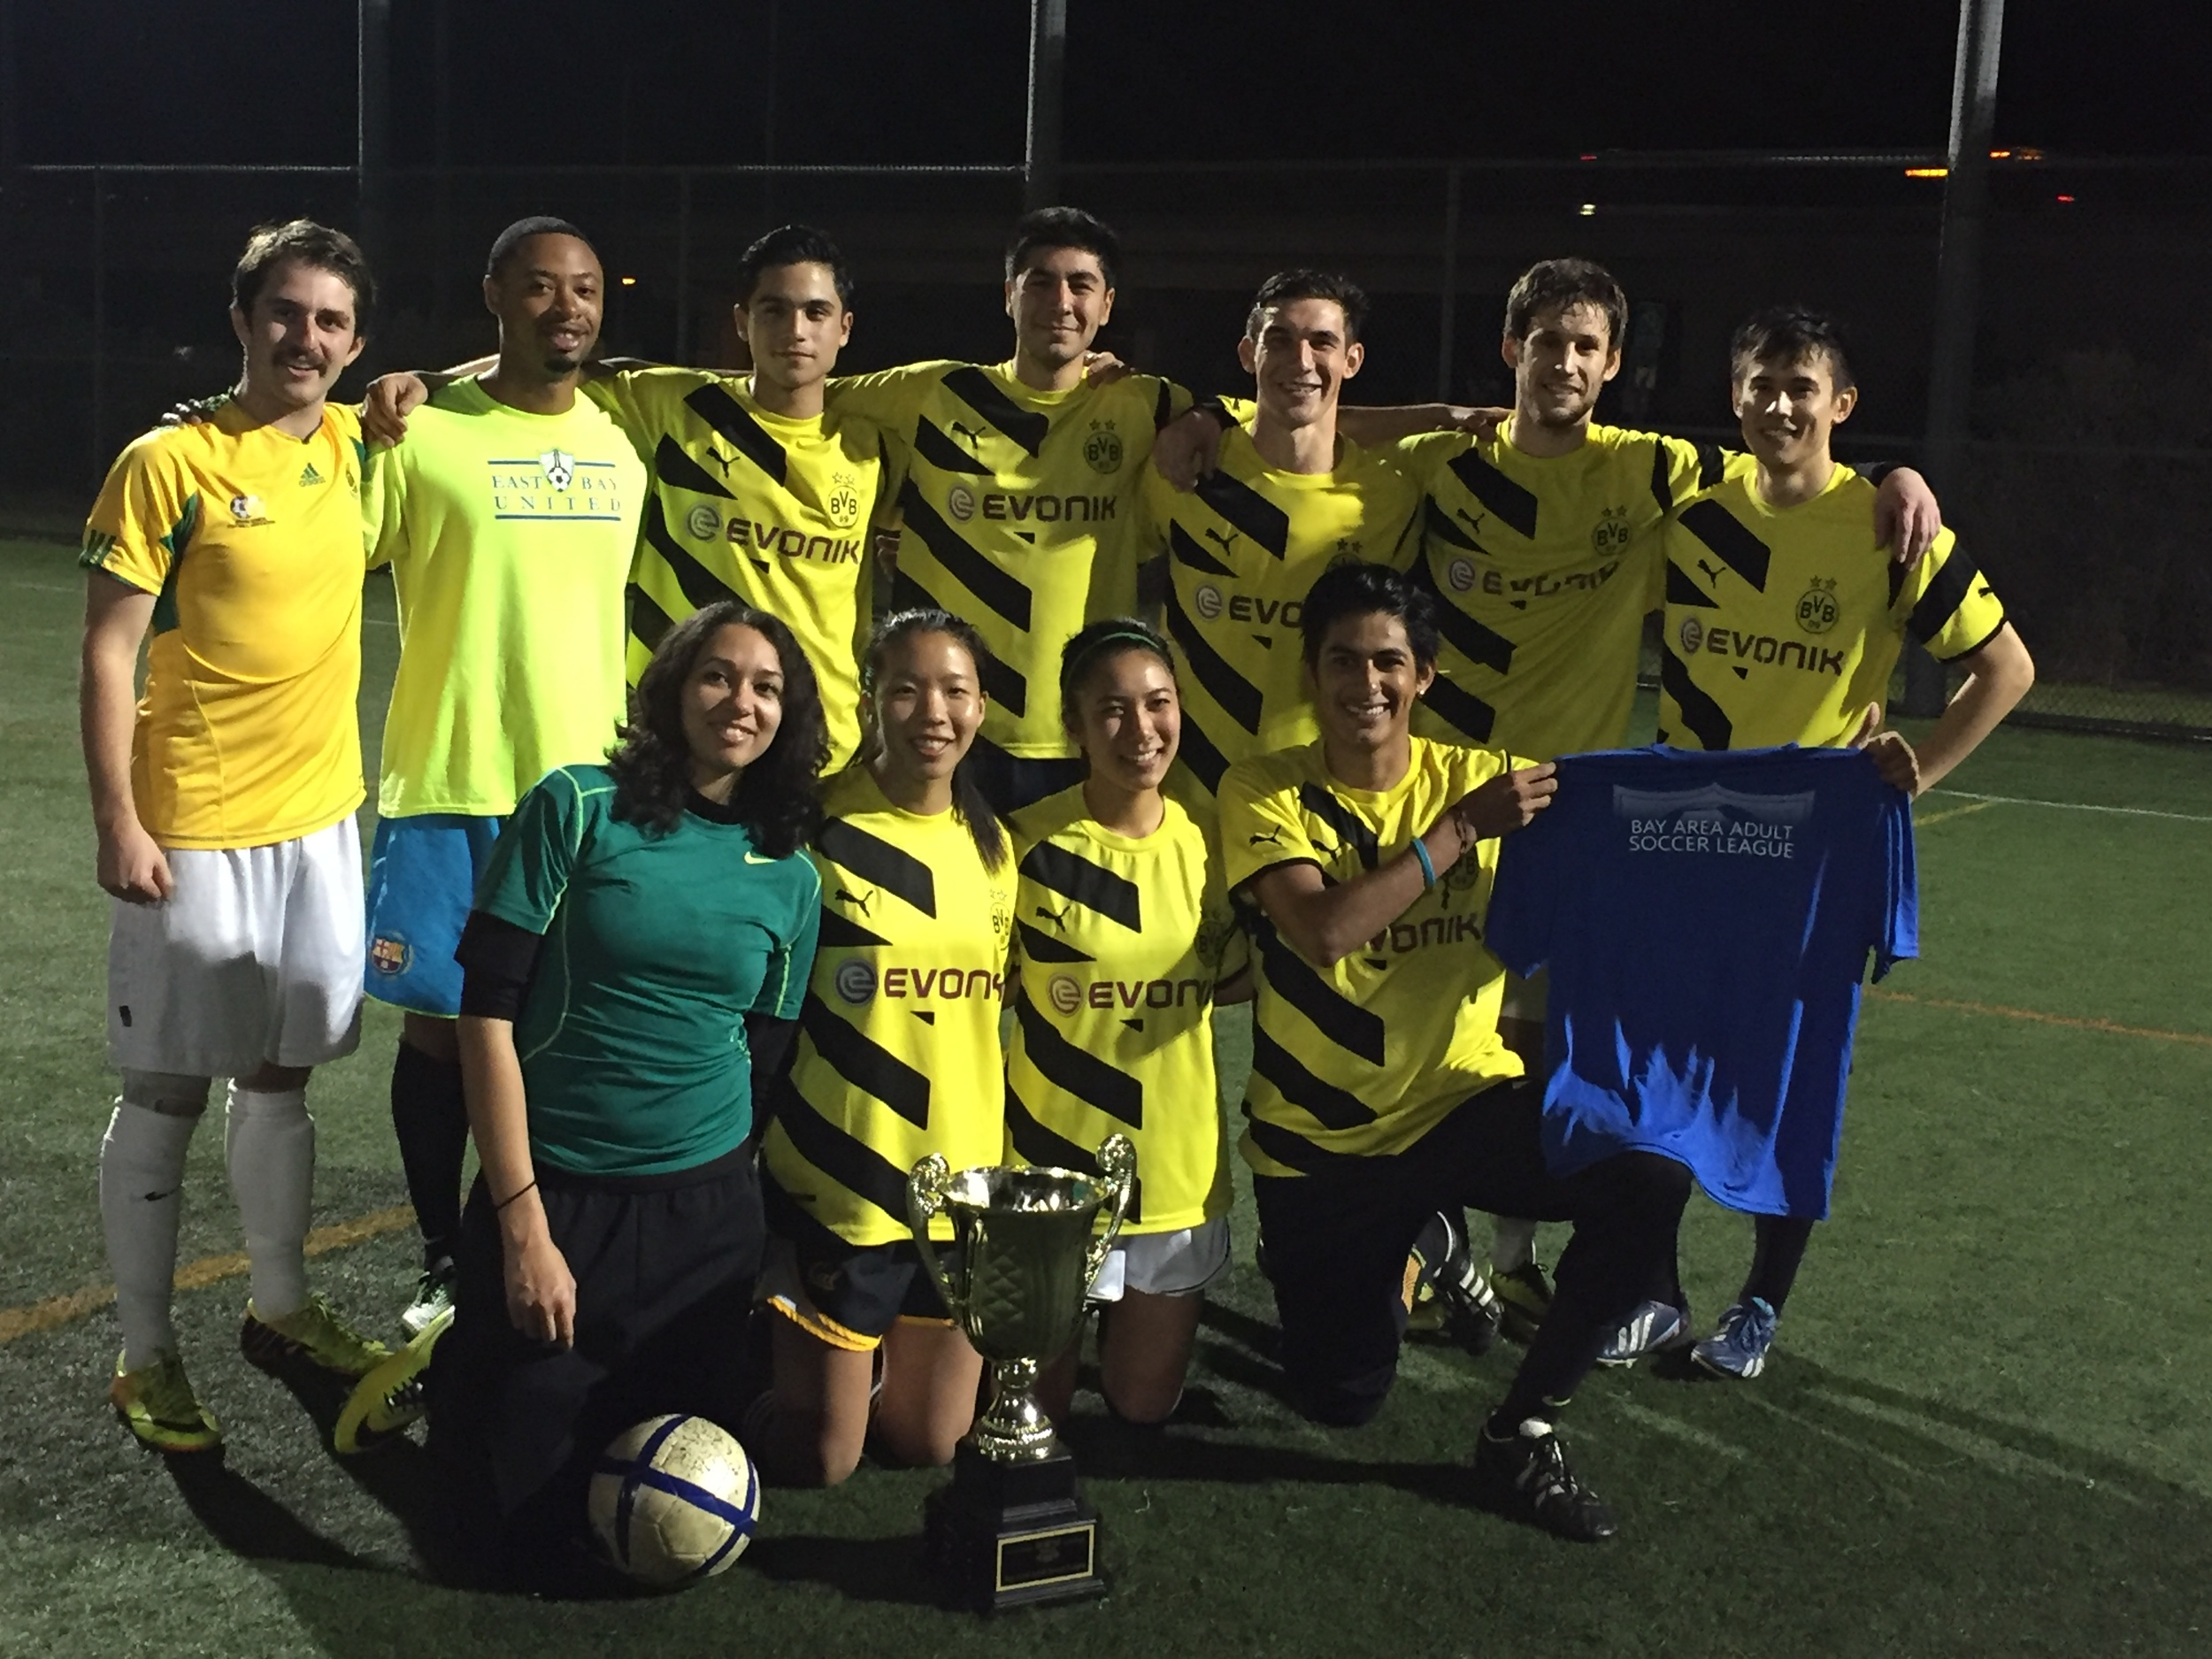 goal diggers champs.jpg